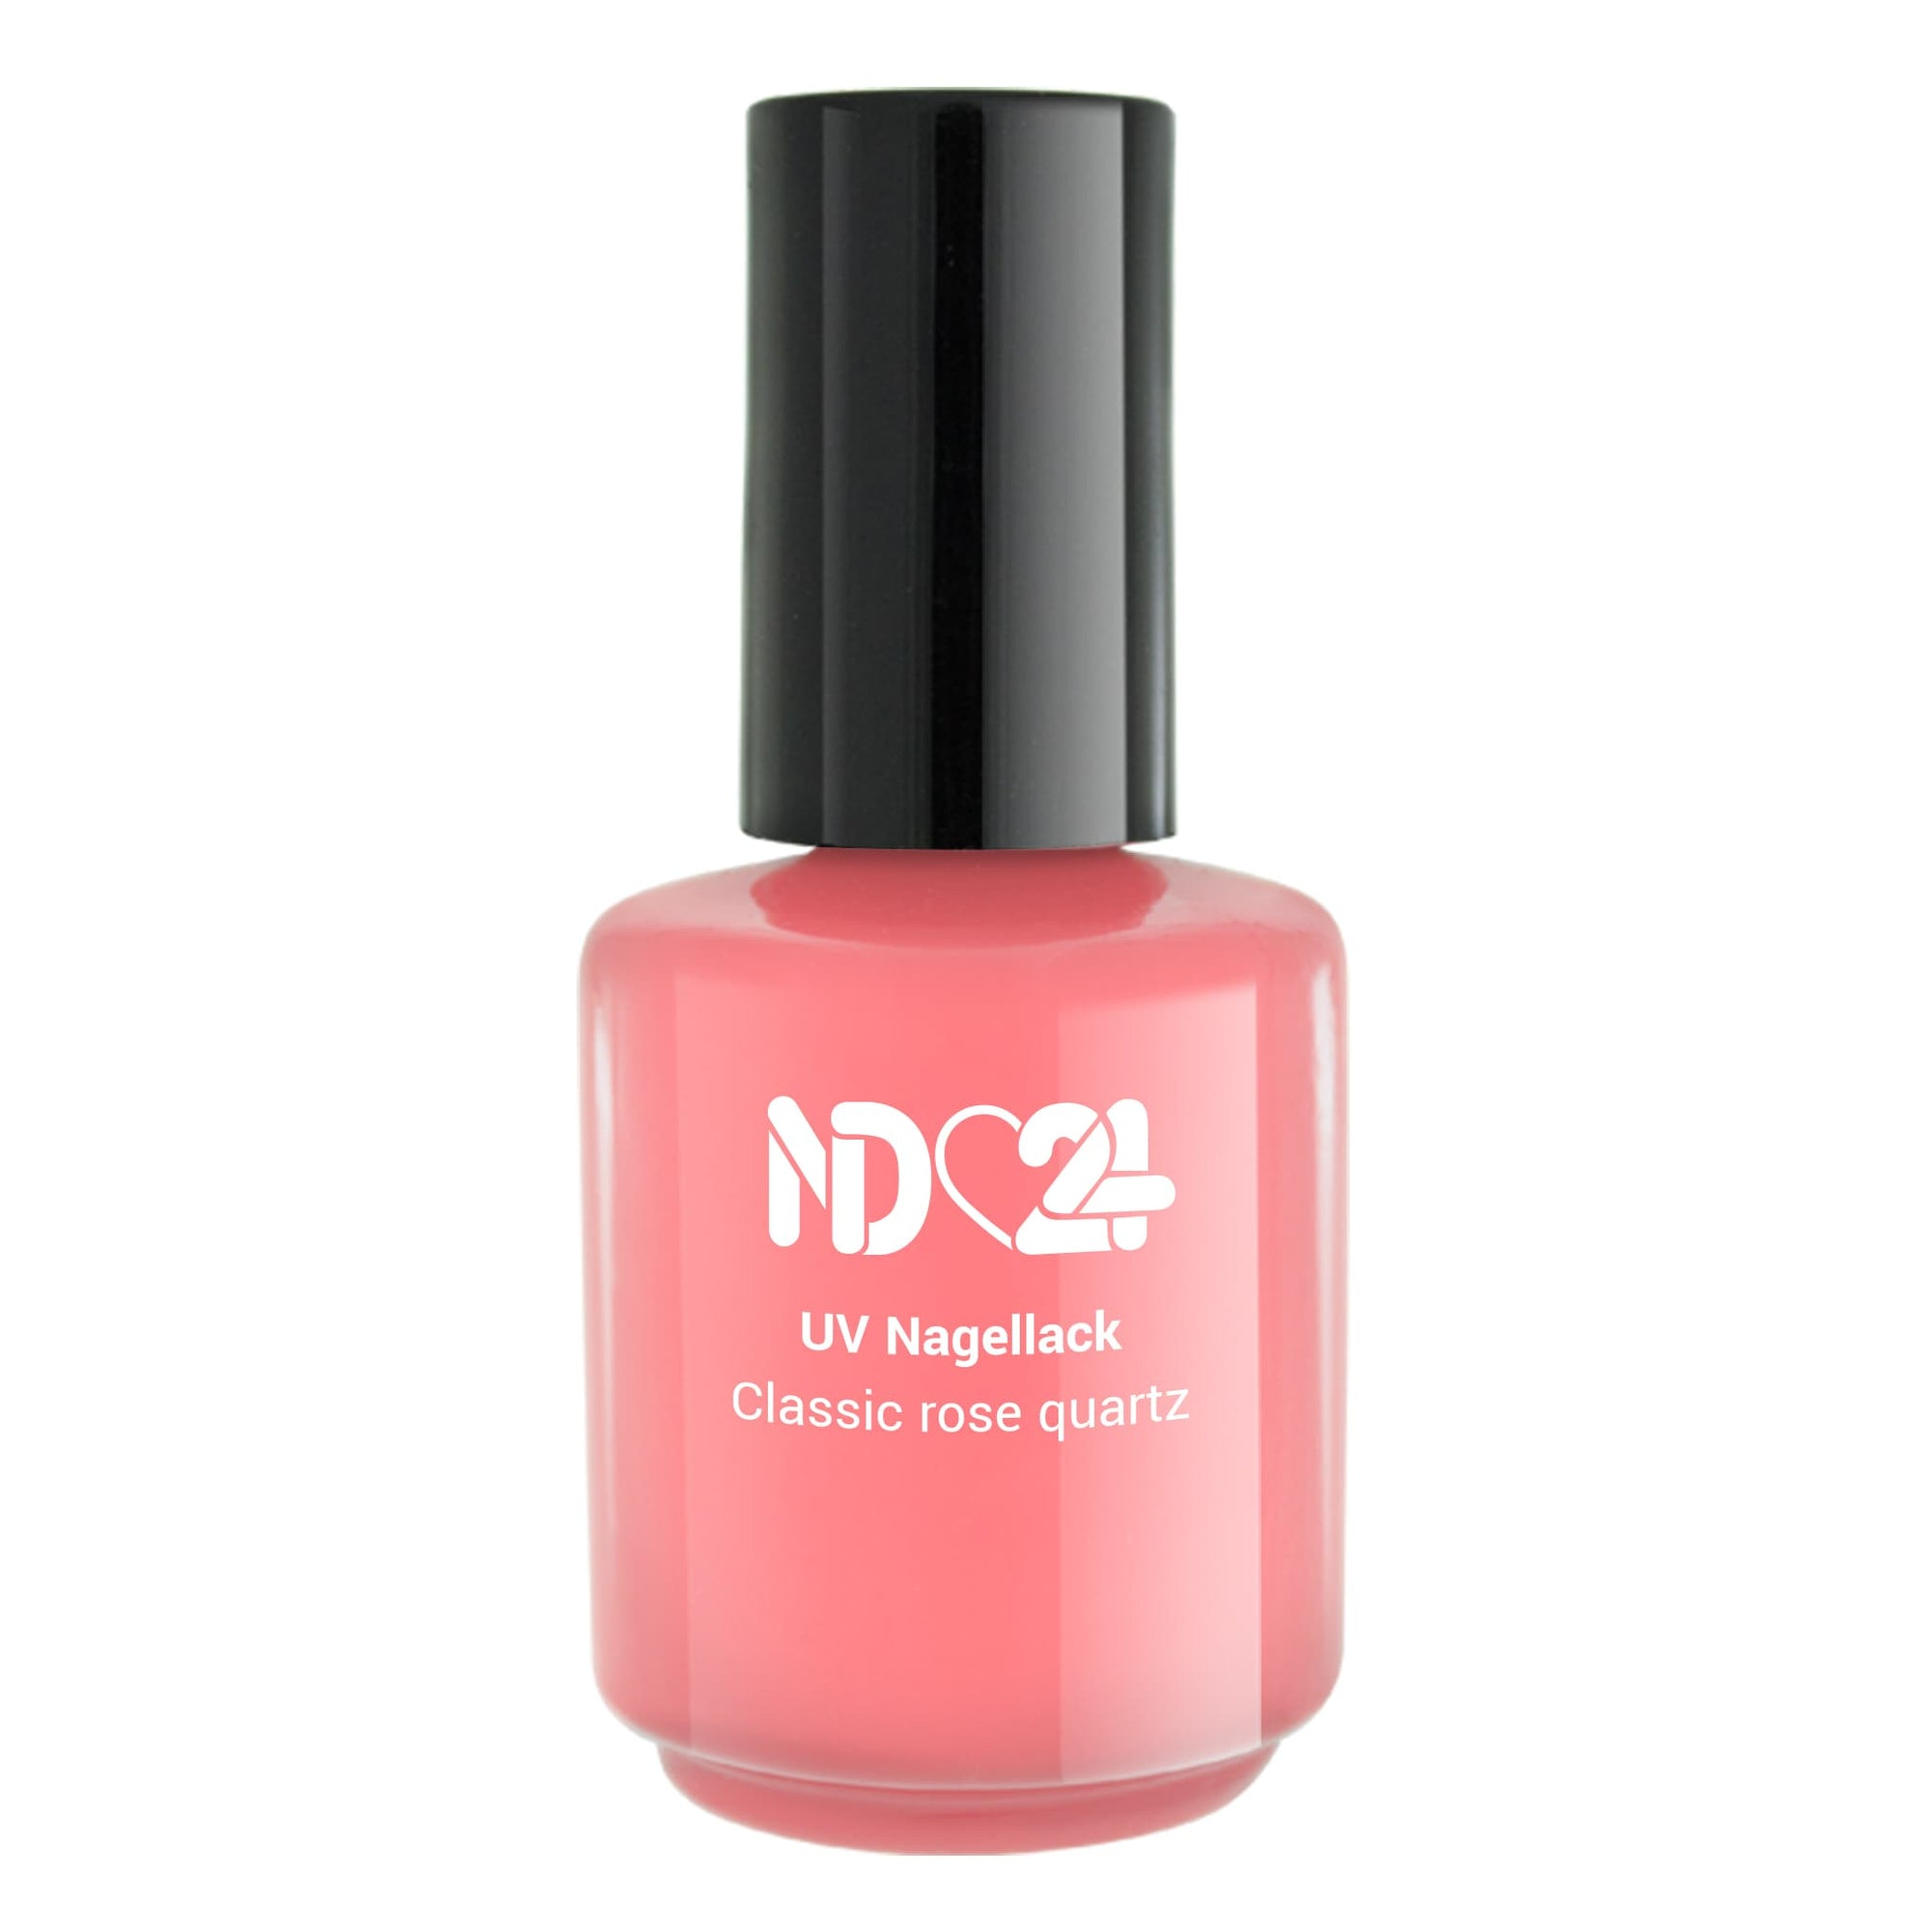 UV Nagellack Classic rose quartz